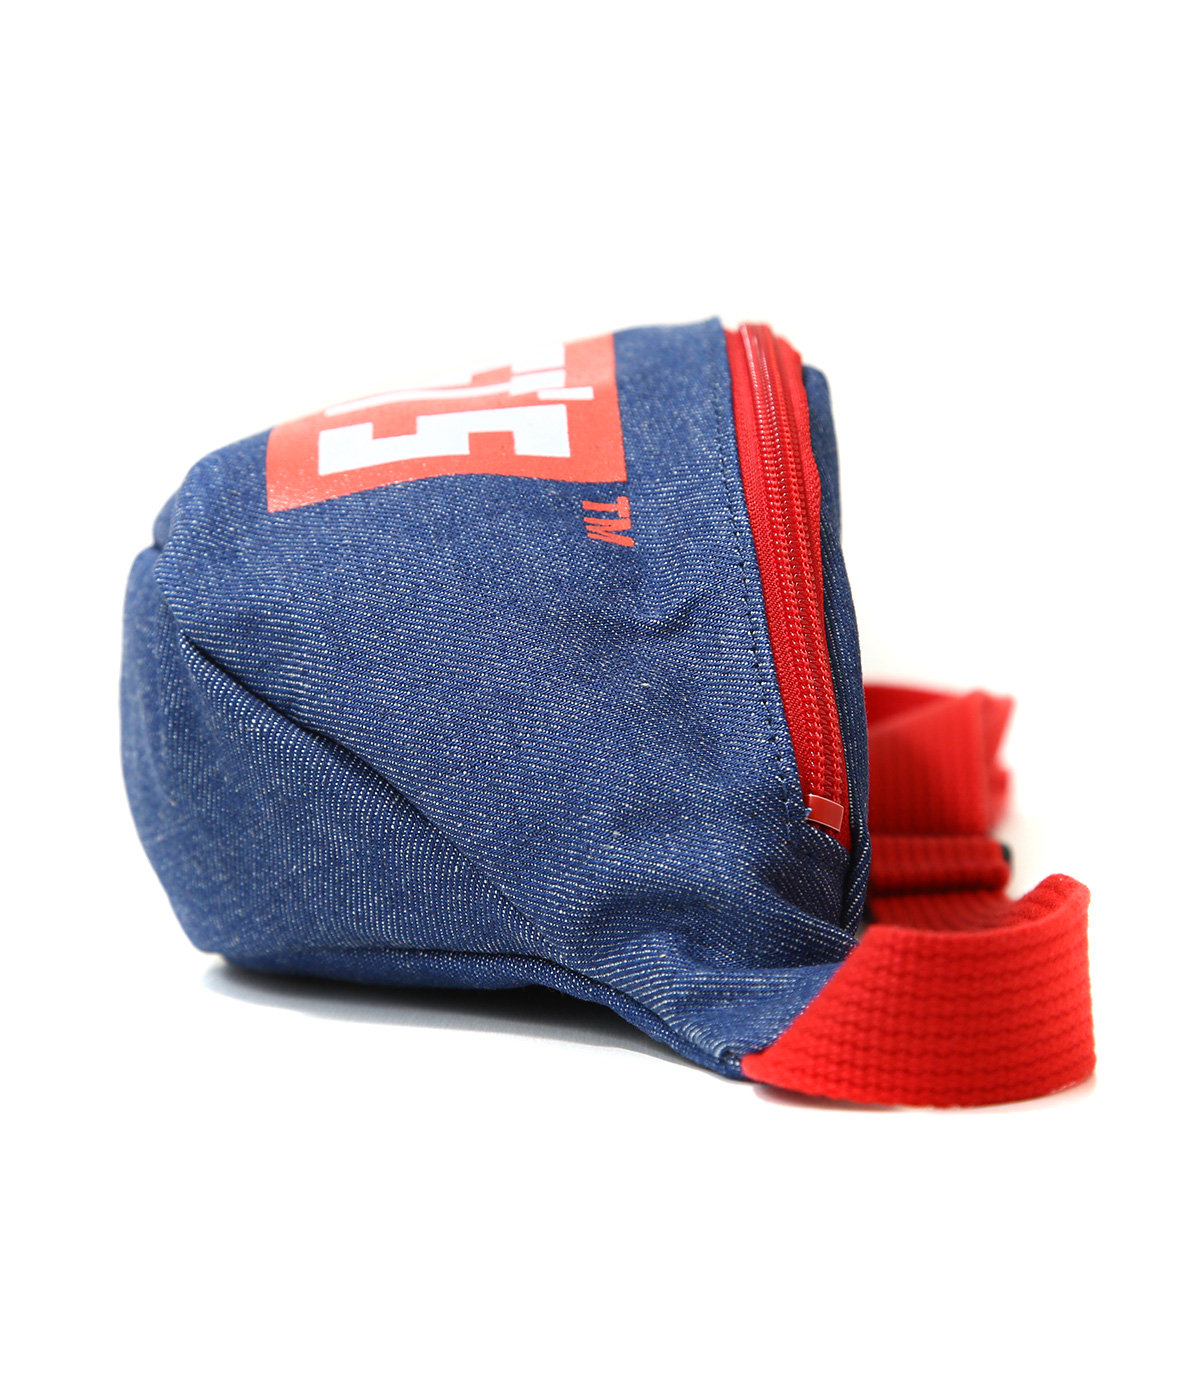 WEST'S POUCH